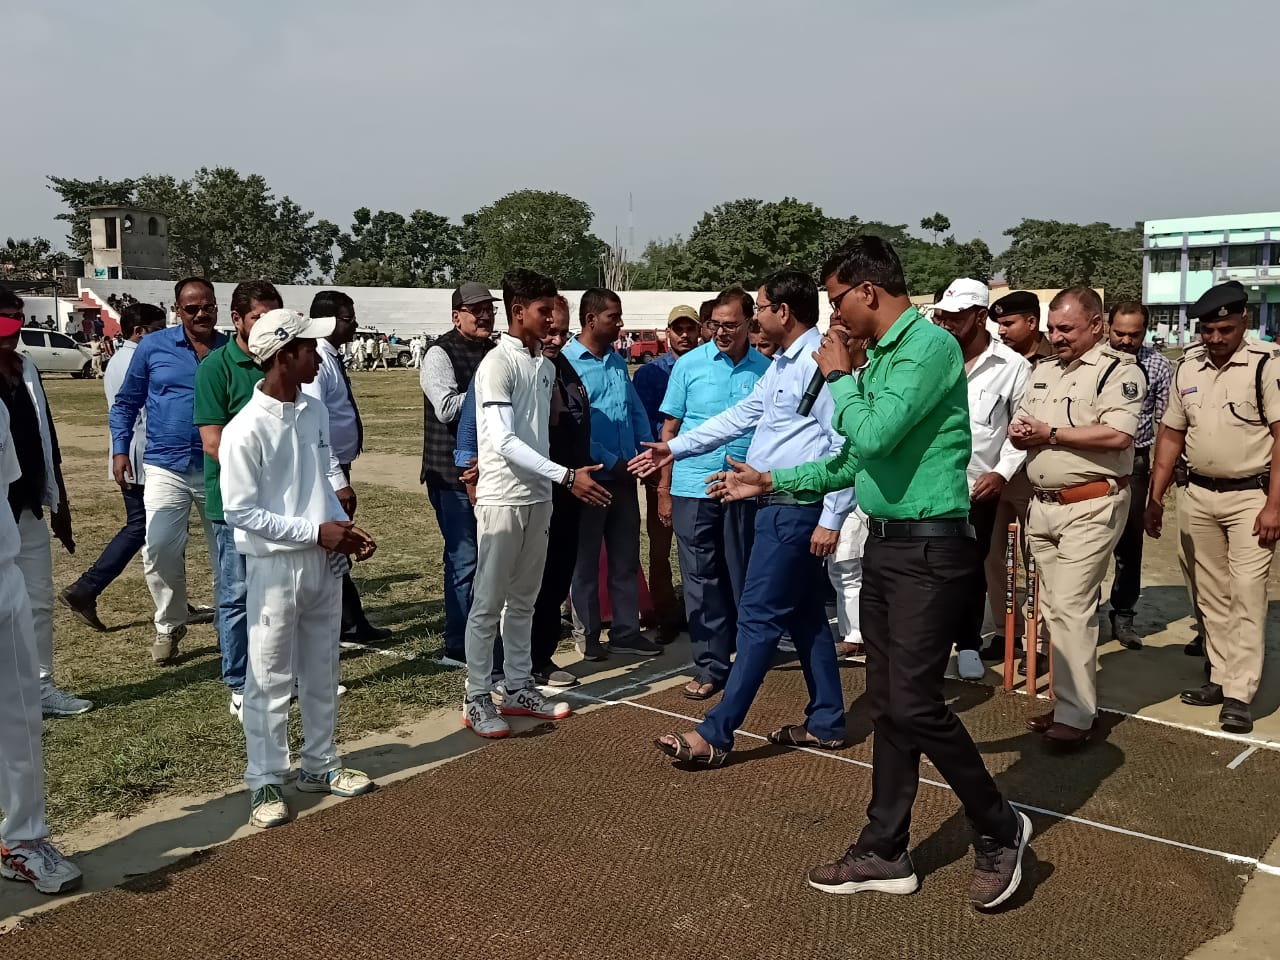 DM Navdeep Shukla get acquainted with the players along with SP Sanjay Kumar, Dr.Bhupendra Madhepuri, Manch Sanchalak Arun Kumar & others on the Cricket Pitch.